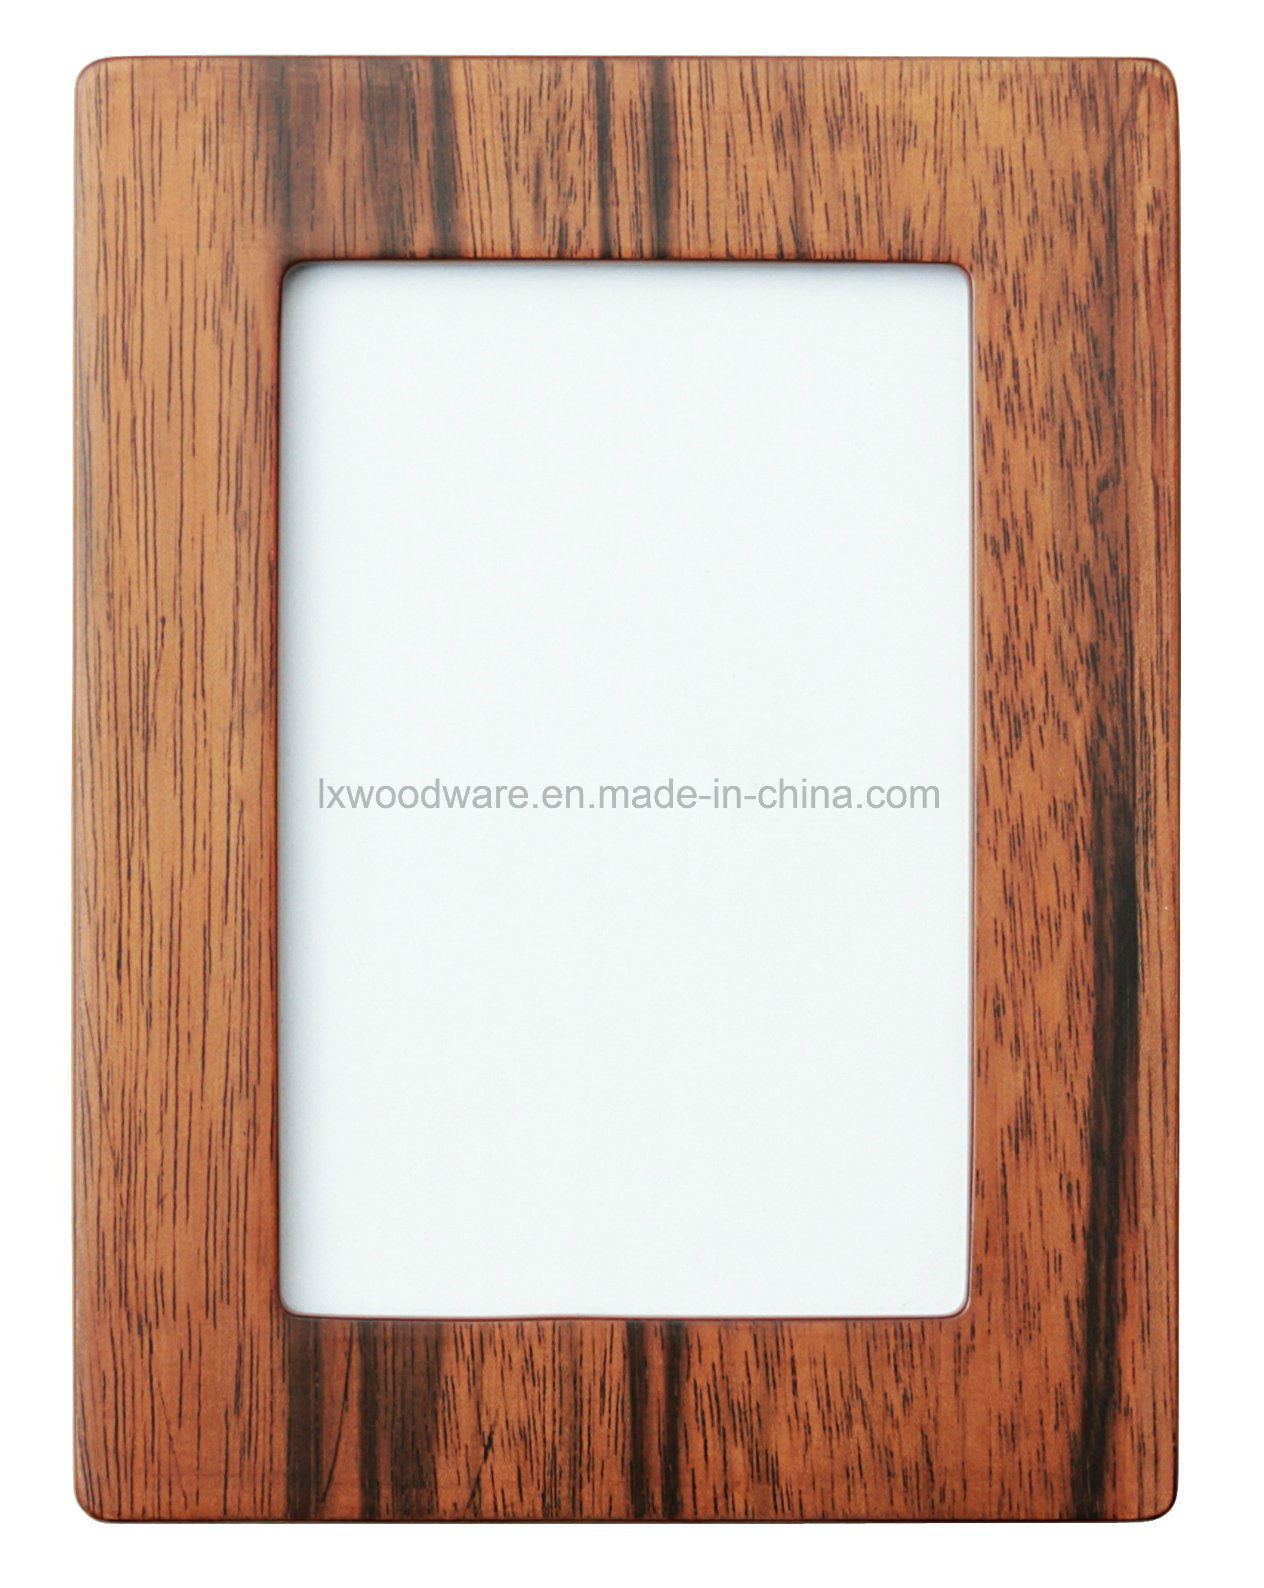 China Walnut Semi-Glossy Wooden Art Craft Photo/Picture Frame with ...